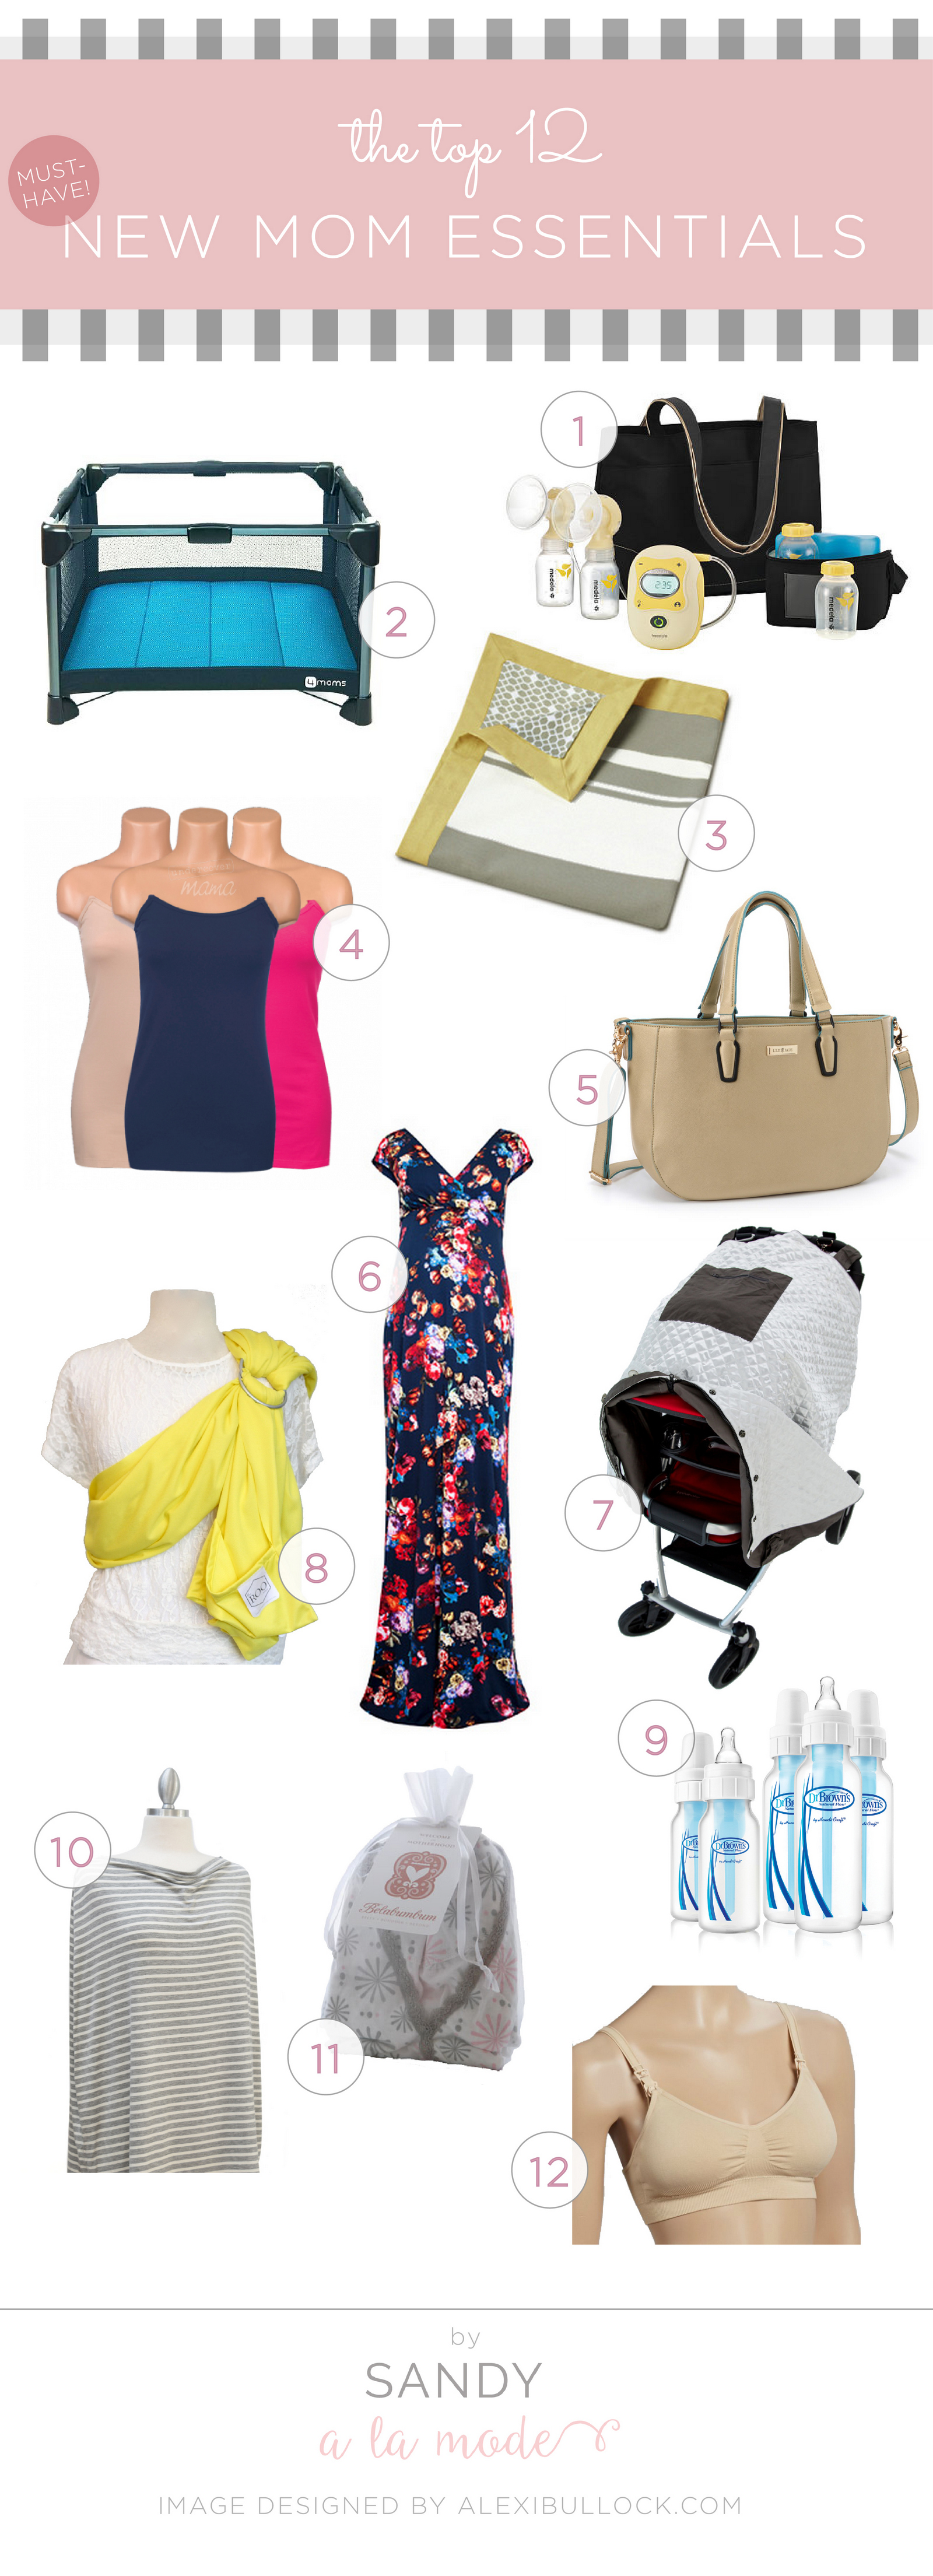 New Mom Must-Have Essentials Guide + Giveaway!